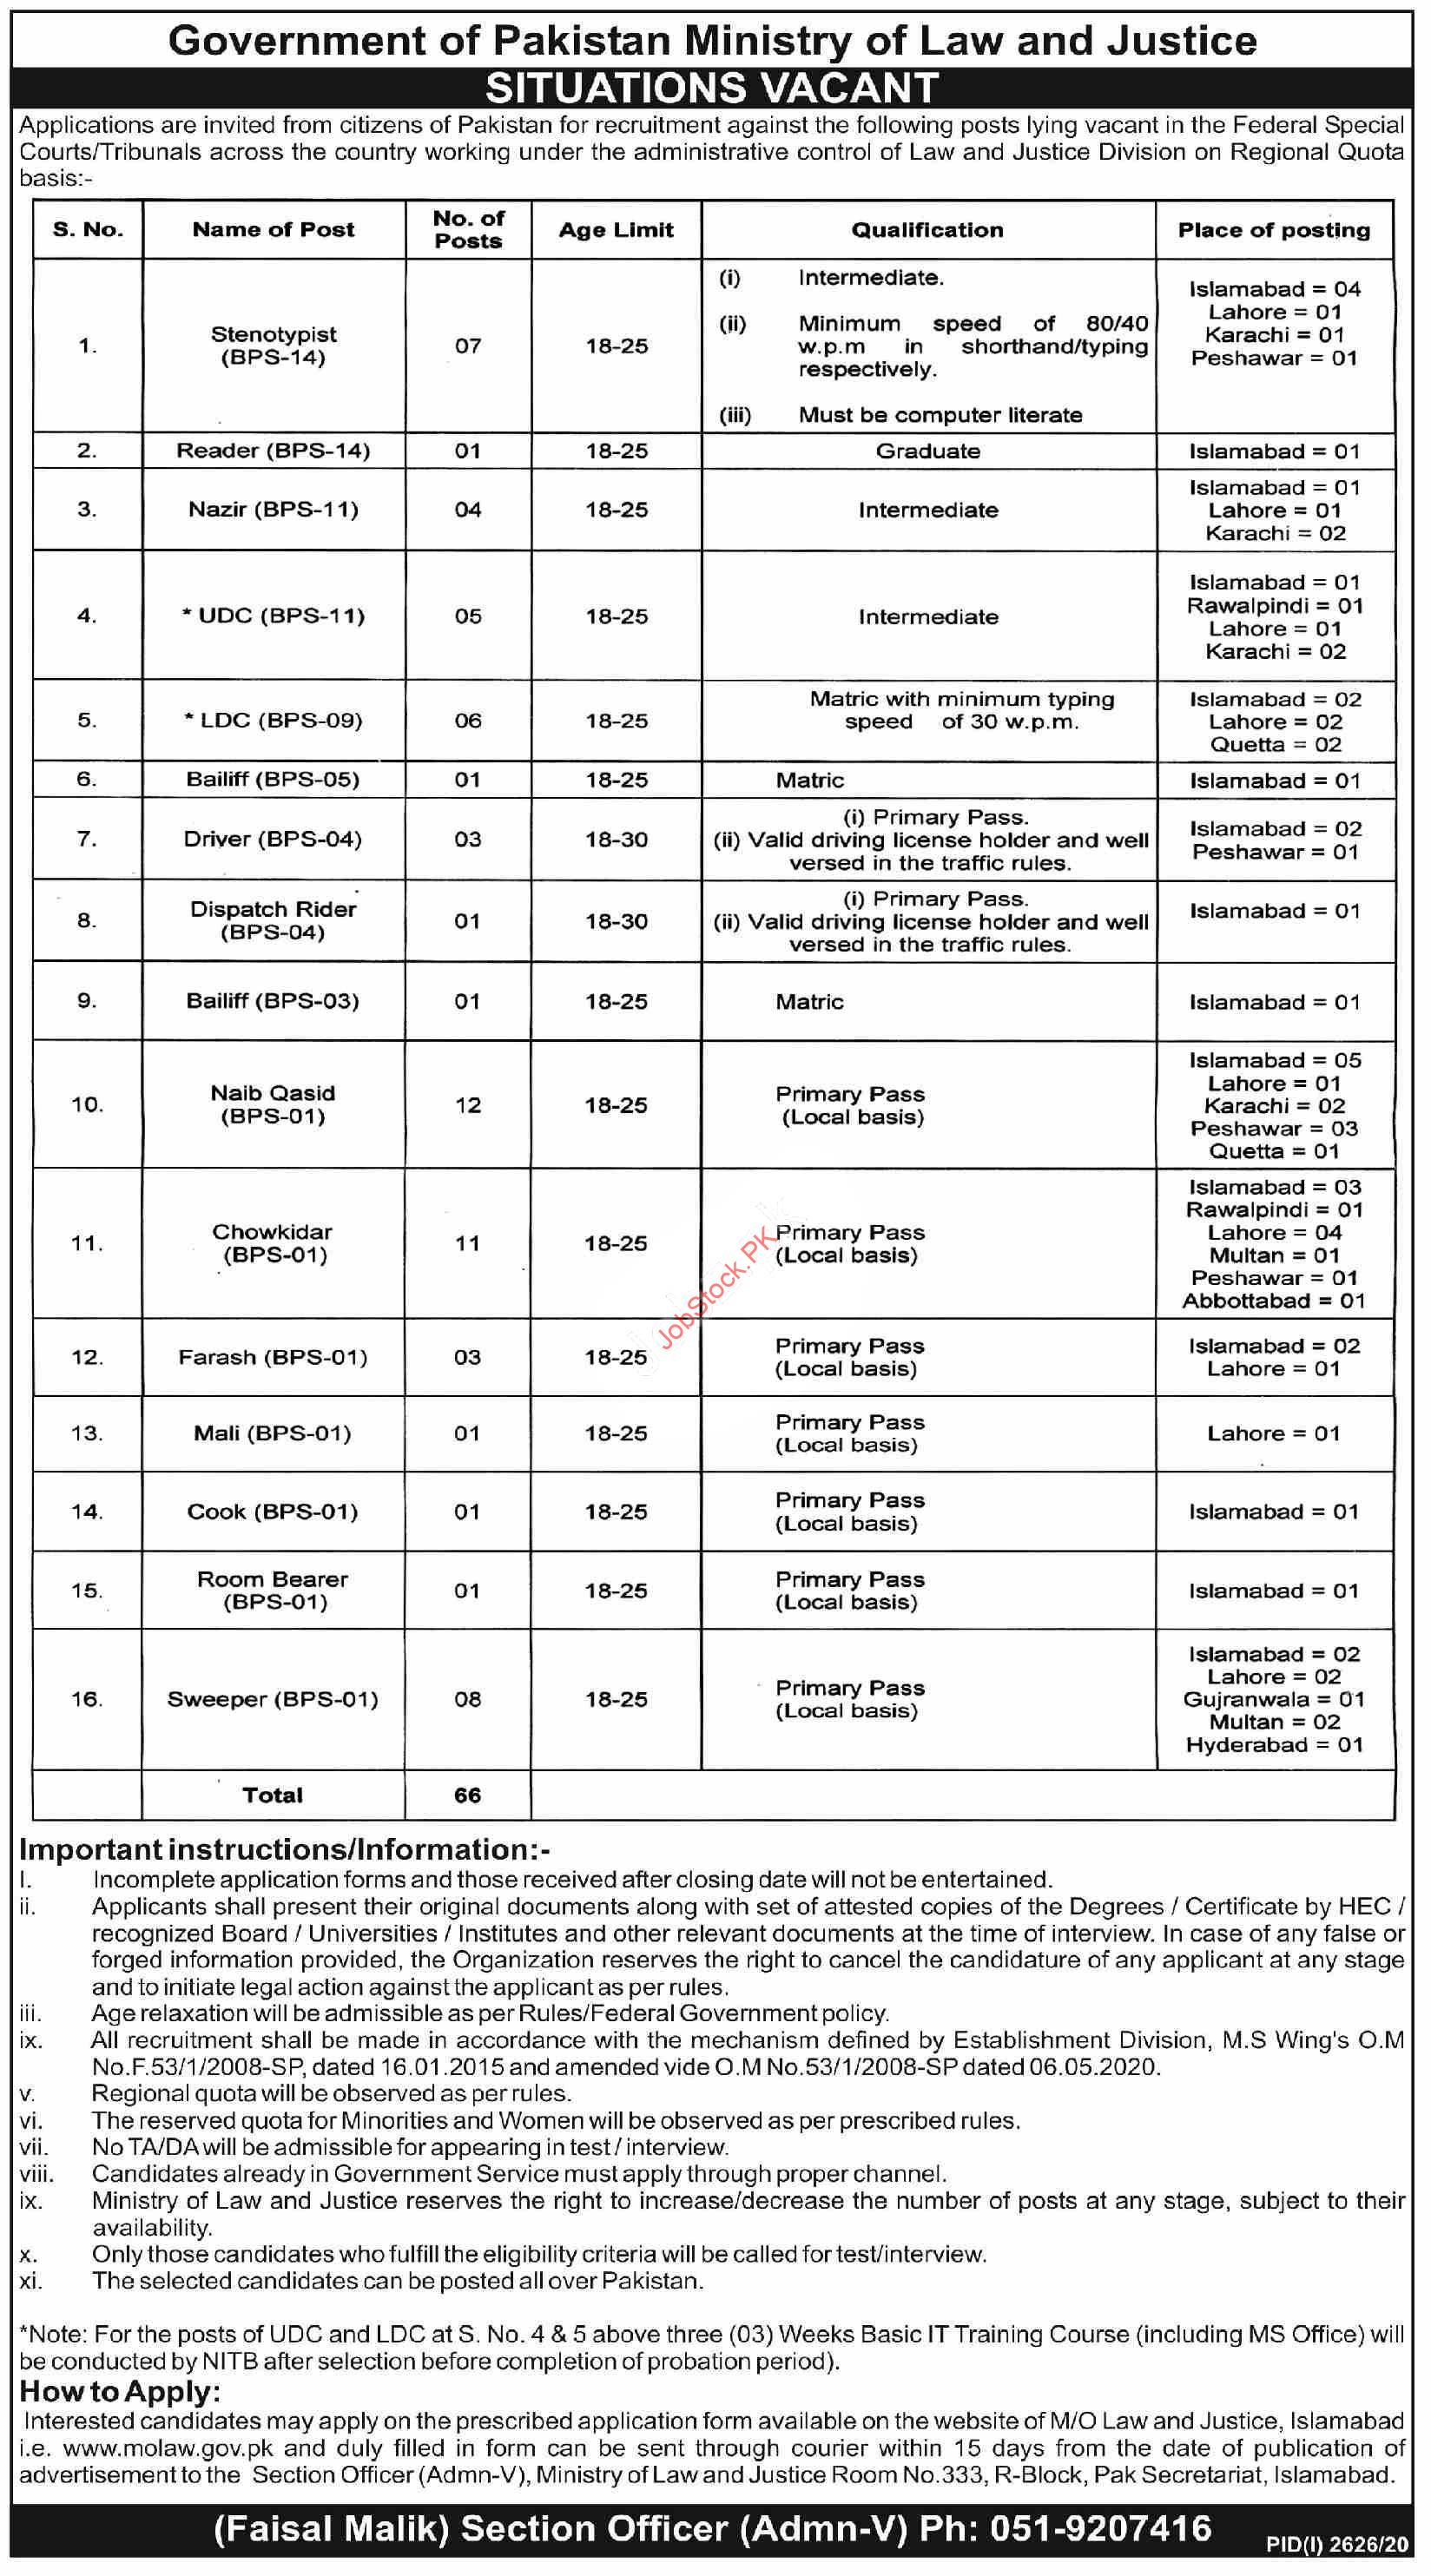 Govt Pakistan Ministry Of Law & Justice Islamabad 2020